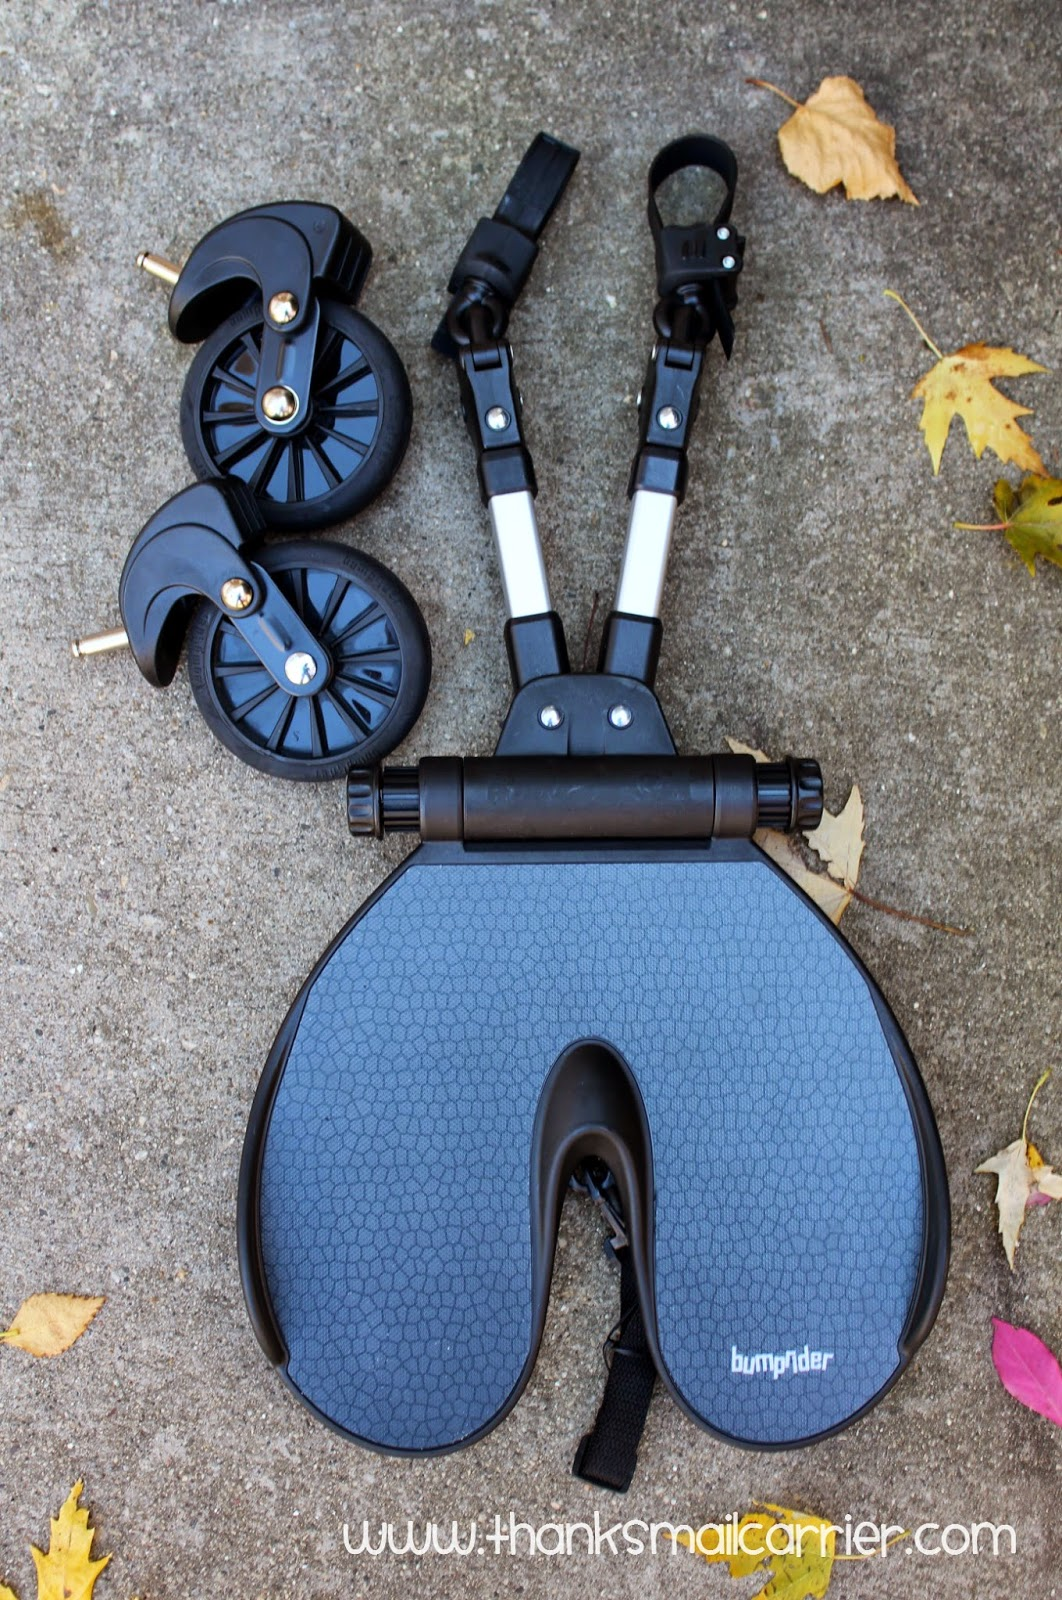 Joovy Bumprider review